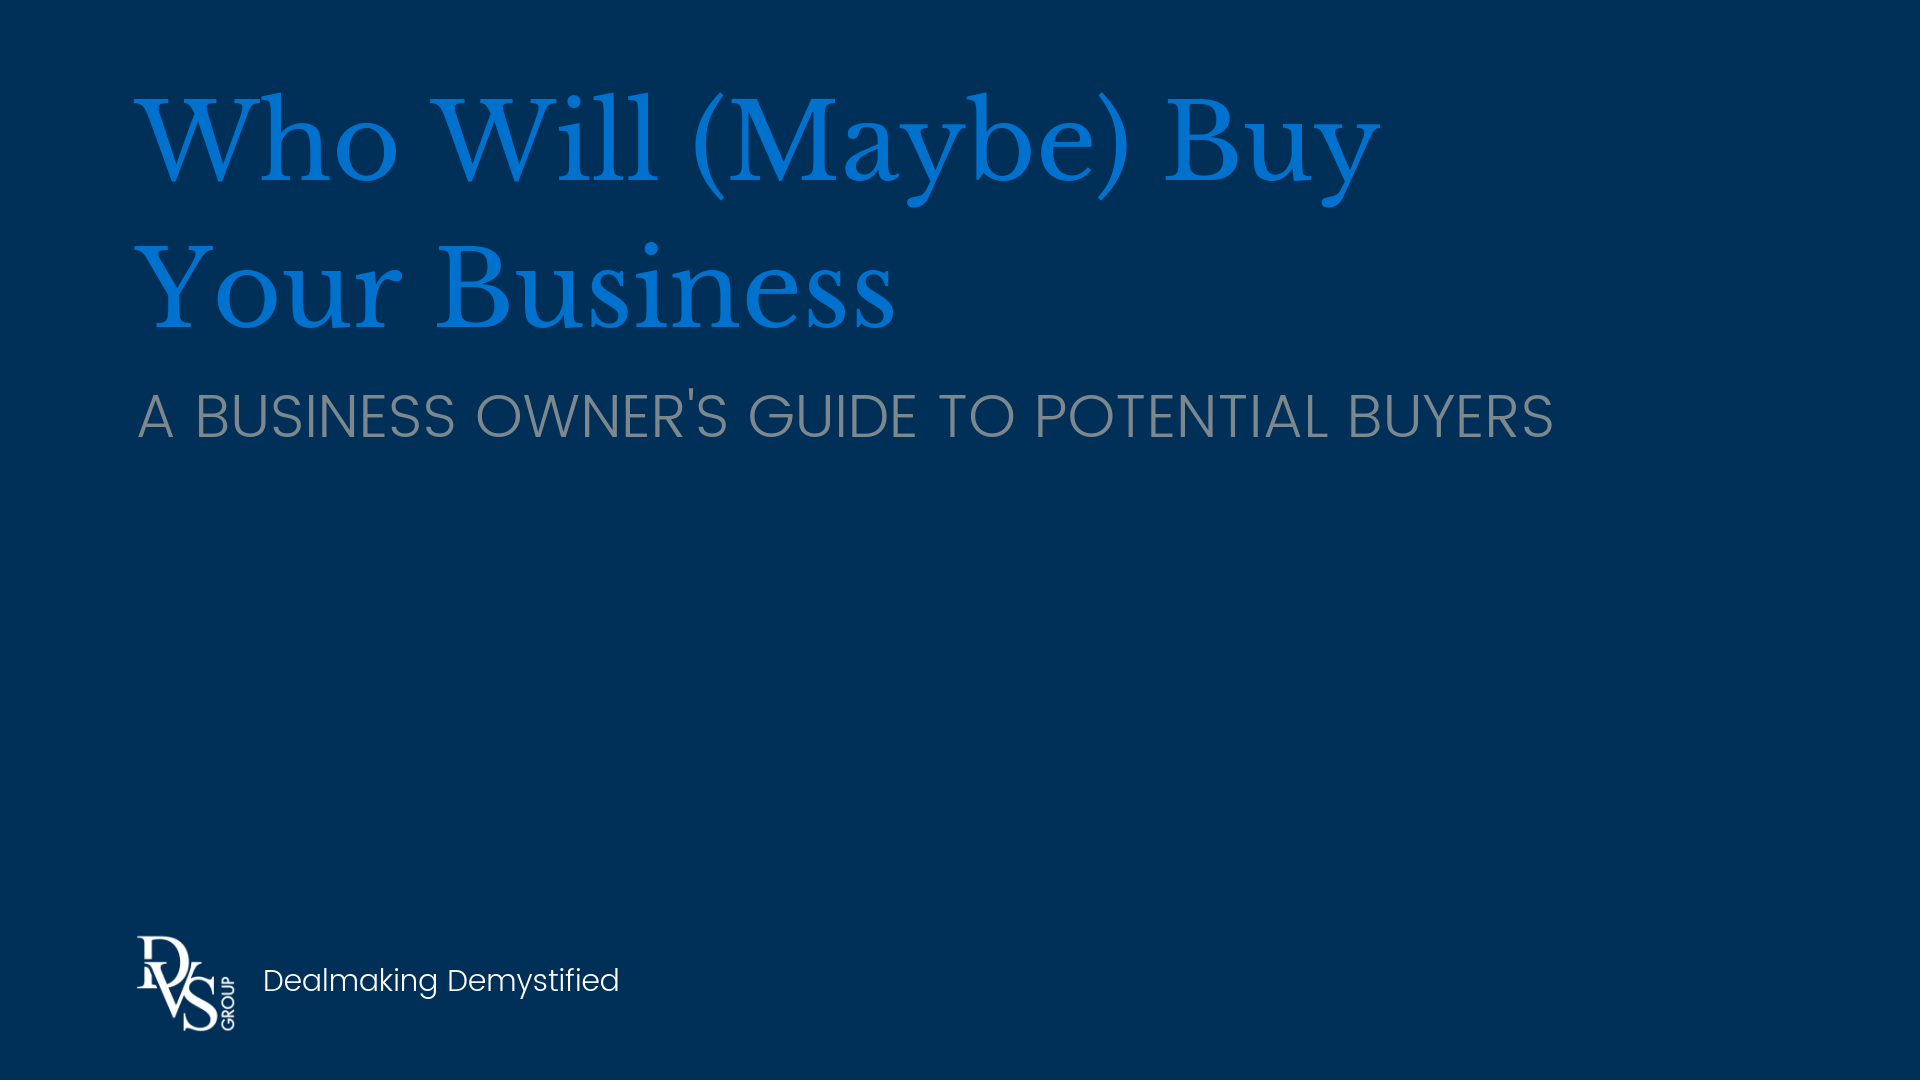 Title Image: Who Will (Maybe) Buy Your Business